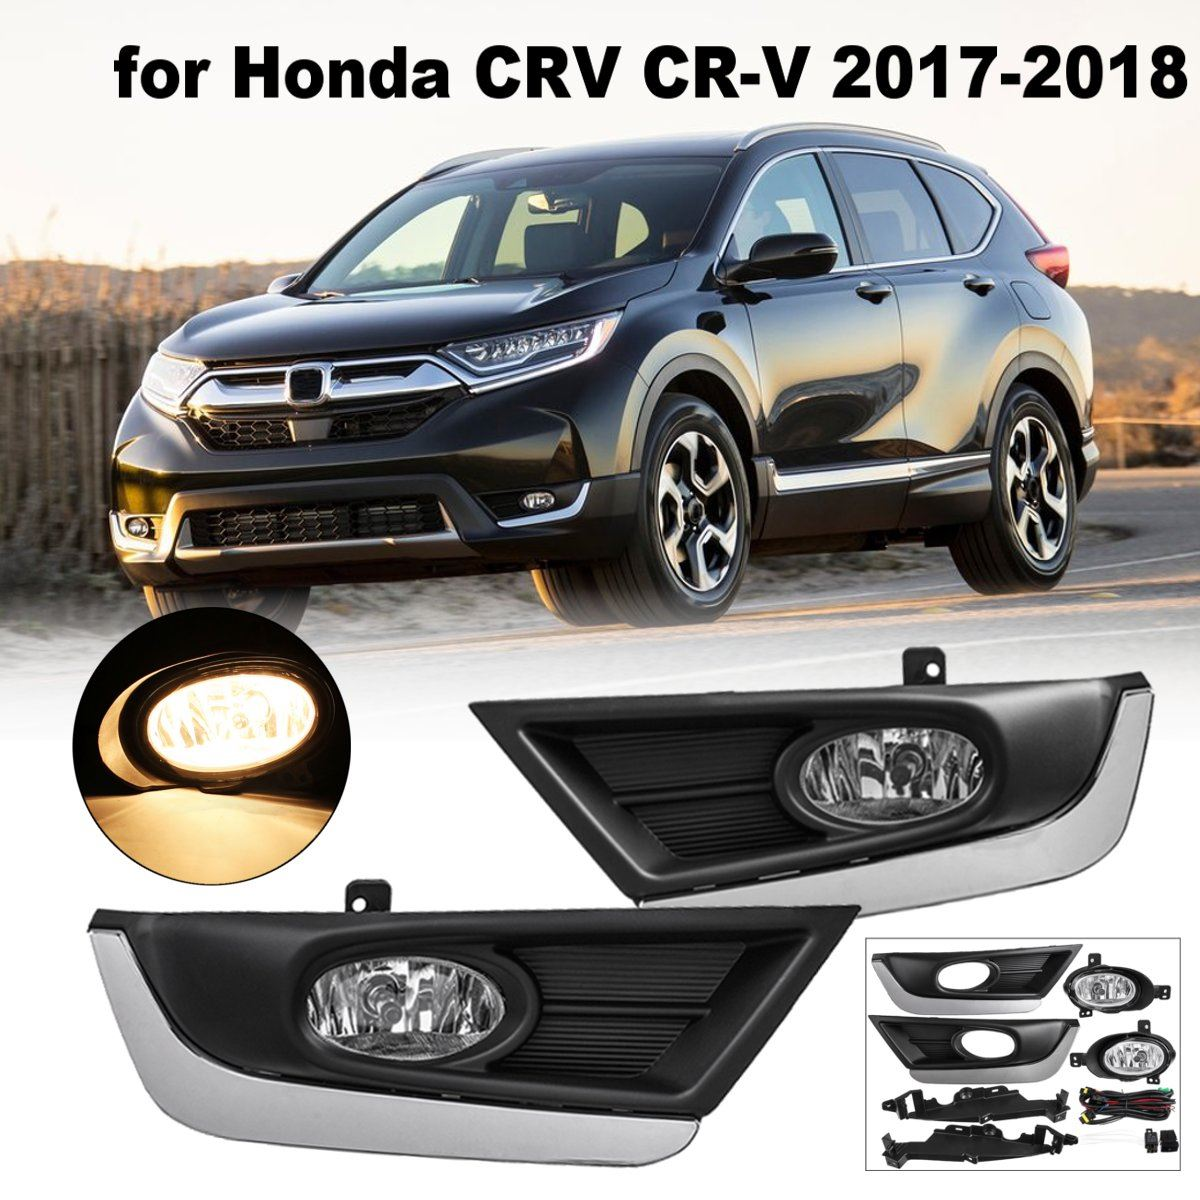 Pair ABS Bumper Fog Lights Driving Lamps w/ Wiring Harness Front Left Right For Honda/CRV/CR-V 2017 2018 DC 12V 40A H11 Bulbs for infiniti fx35 37 45 50 ex35 37 h11 wiring harness sockets wire connector switch 2 fog lights drl front bumper led lamp